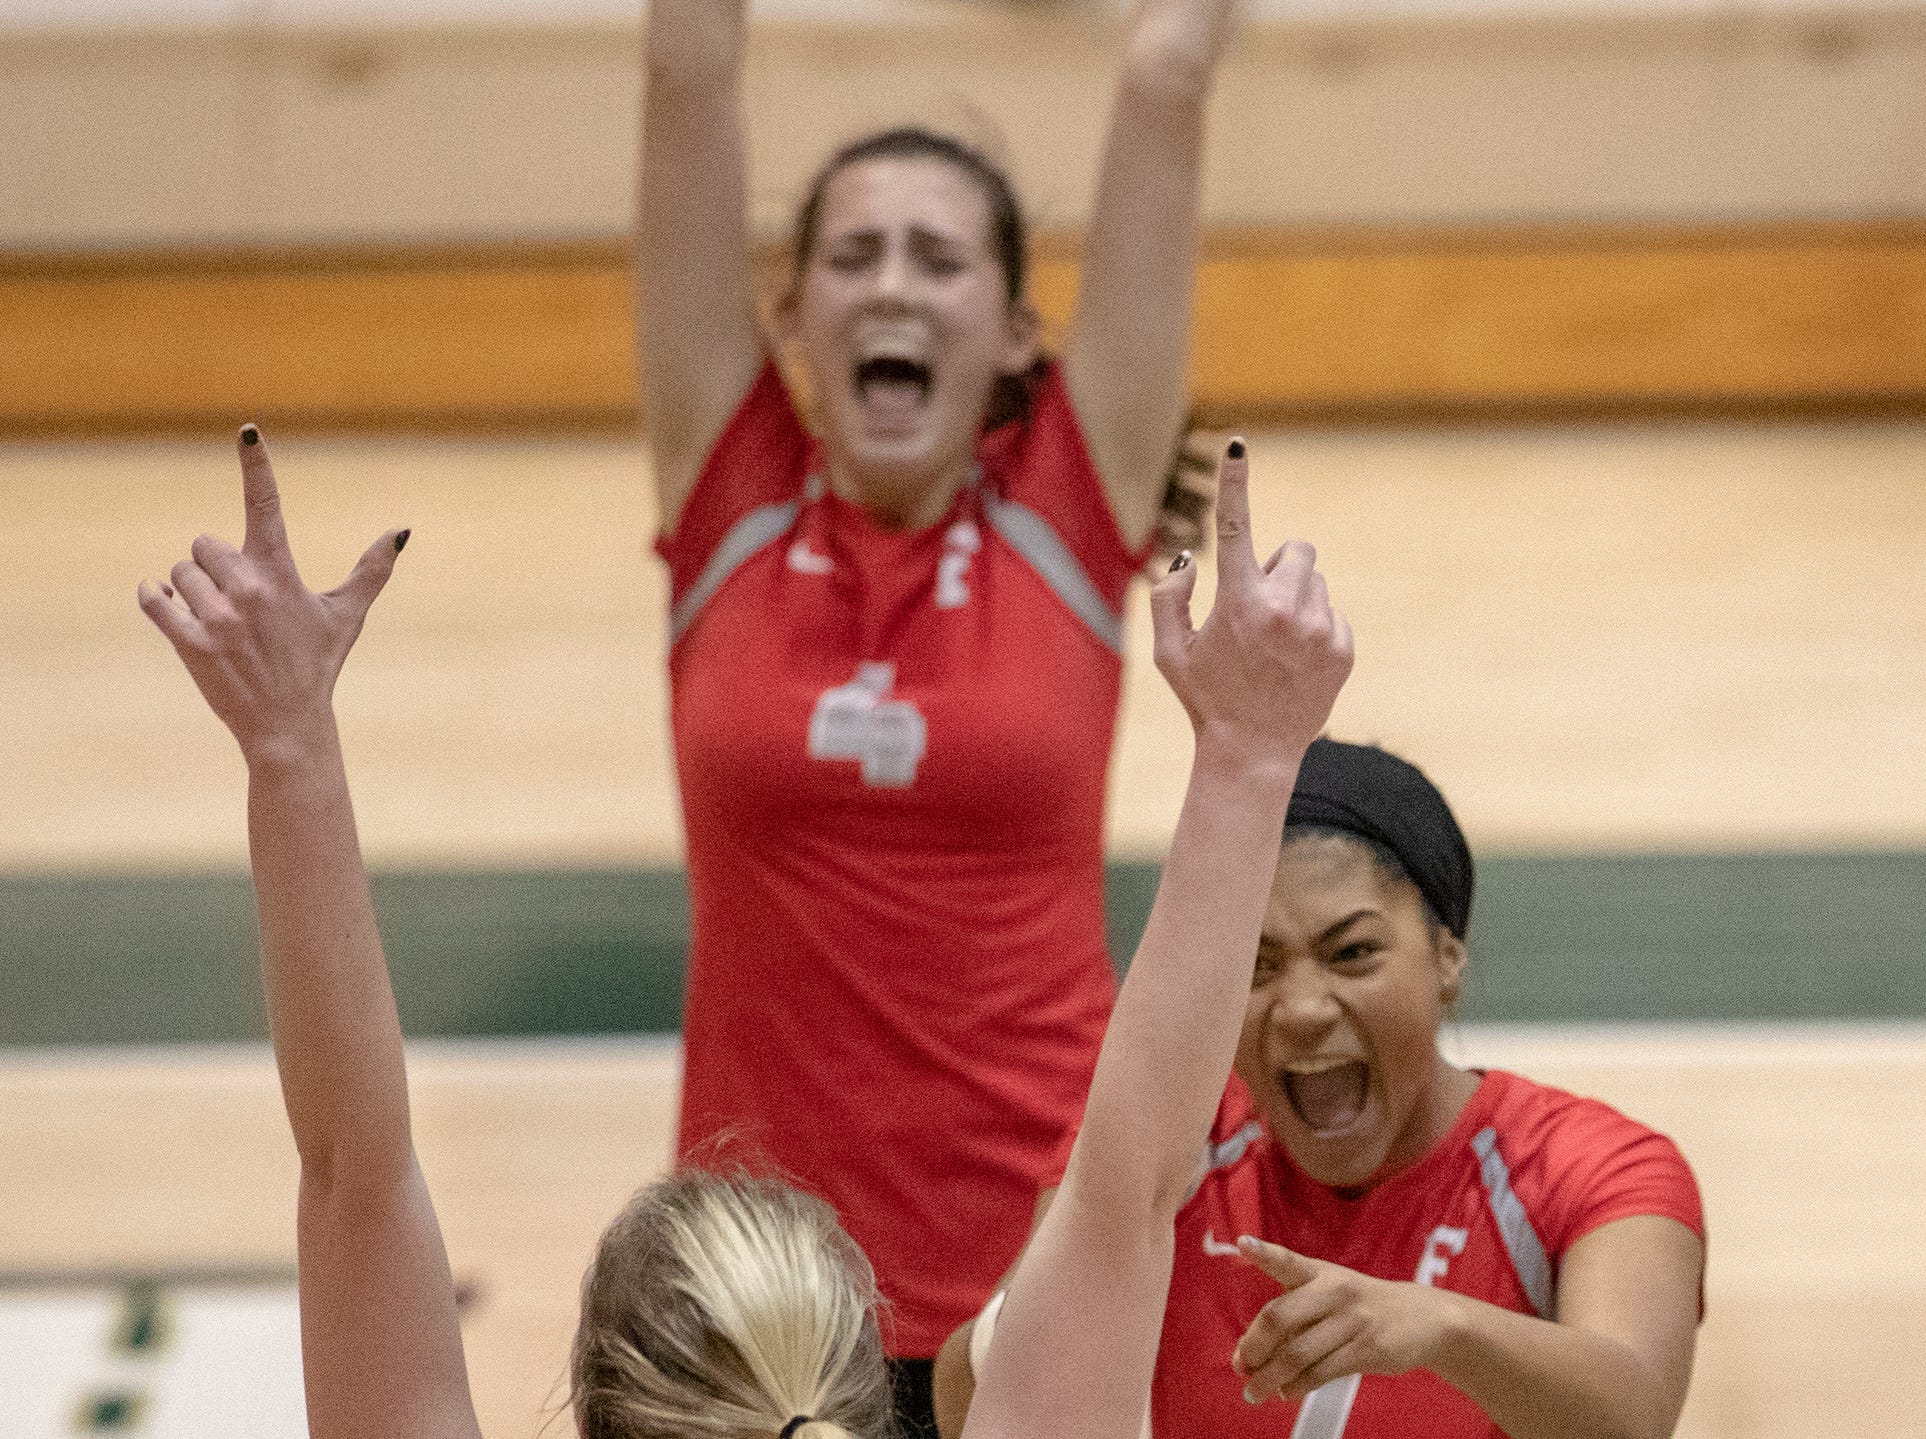 Fishers High School players celebrate during action against Hamilton Southeastern High School in which they won in three straight sets in the first round of the volleyball sectional at Westfield High School, Westfield, Thursday, Oct. 11, 2018. The win matches them up with Westfield High School for a game on Saturday morning at 11a.m.